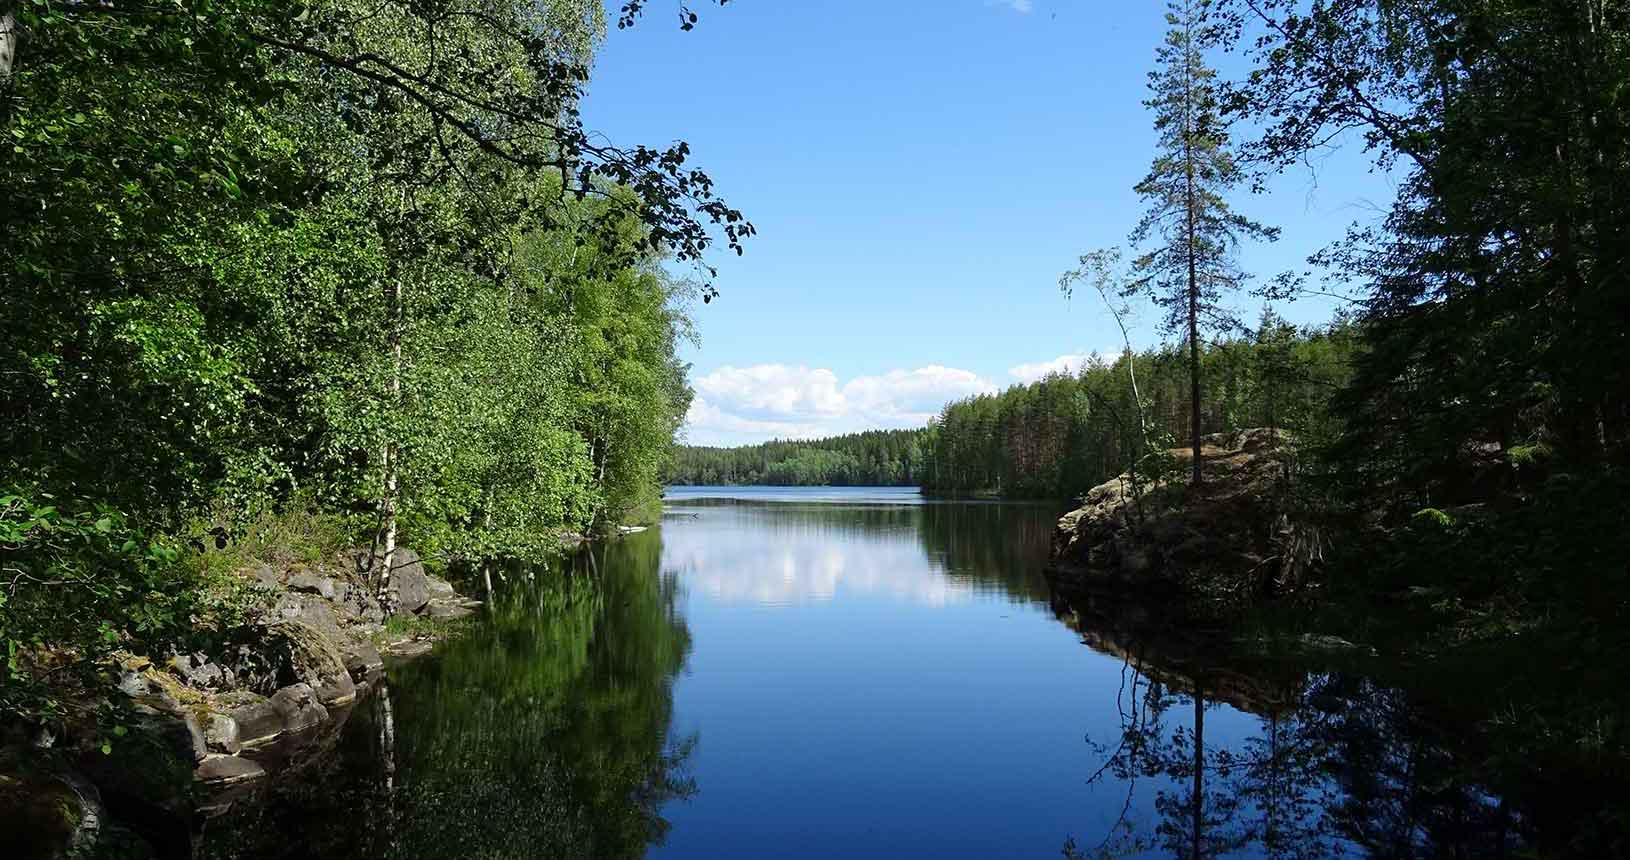 Blue lake in Finnish national park